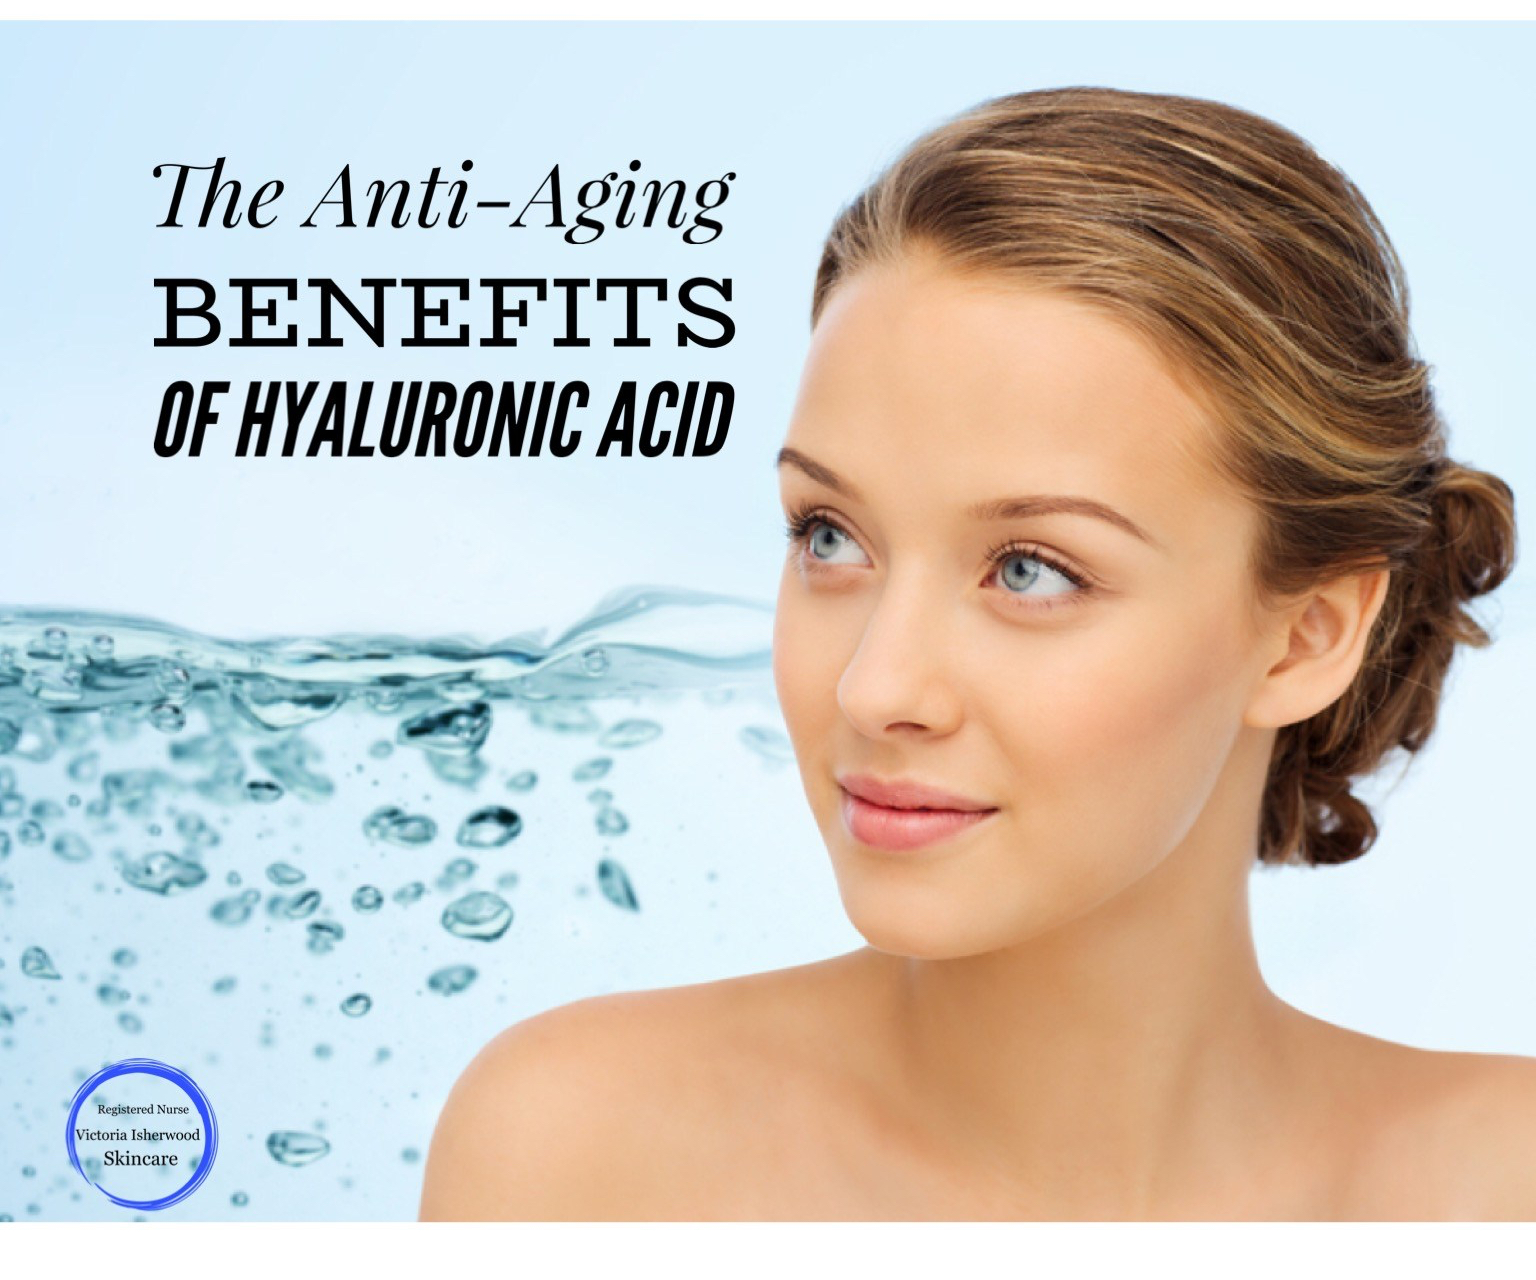 The Anti-Aging Benefits of Hyaluronic Acid – Clinical